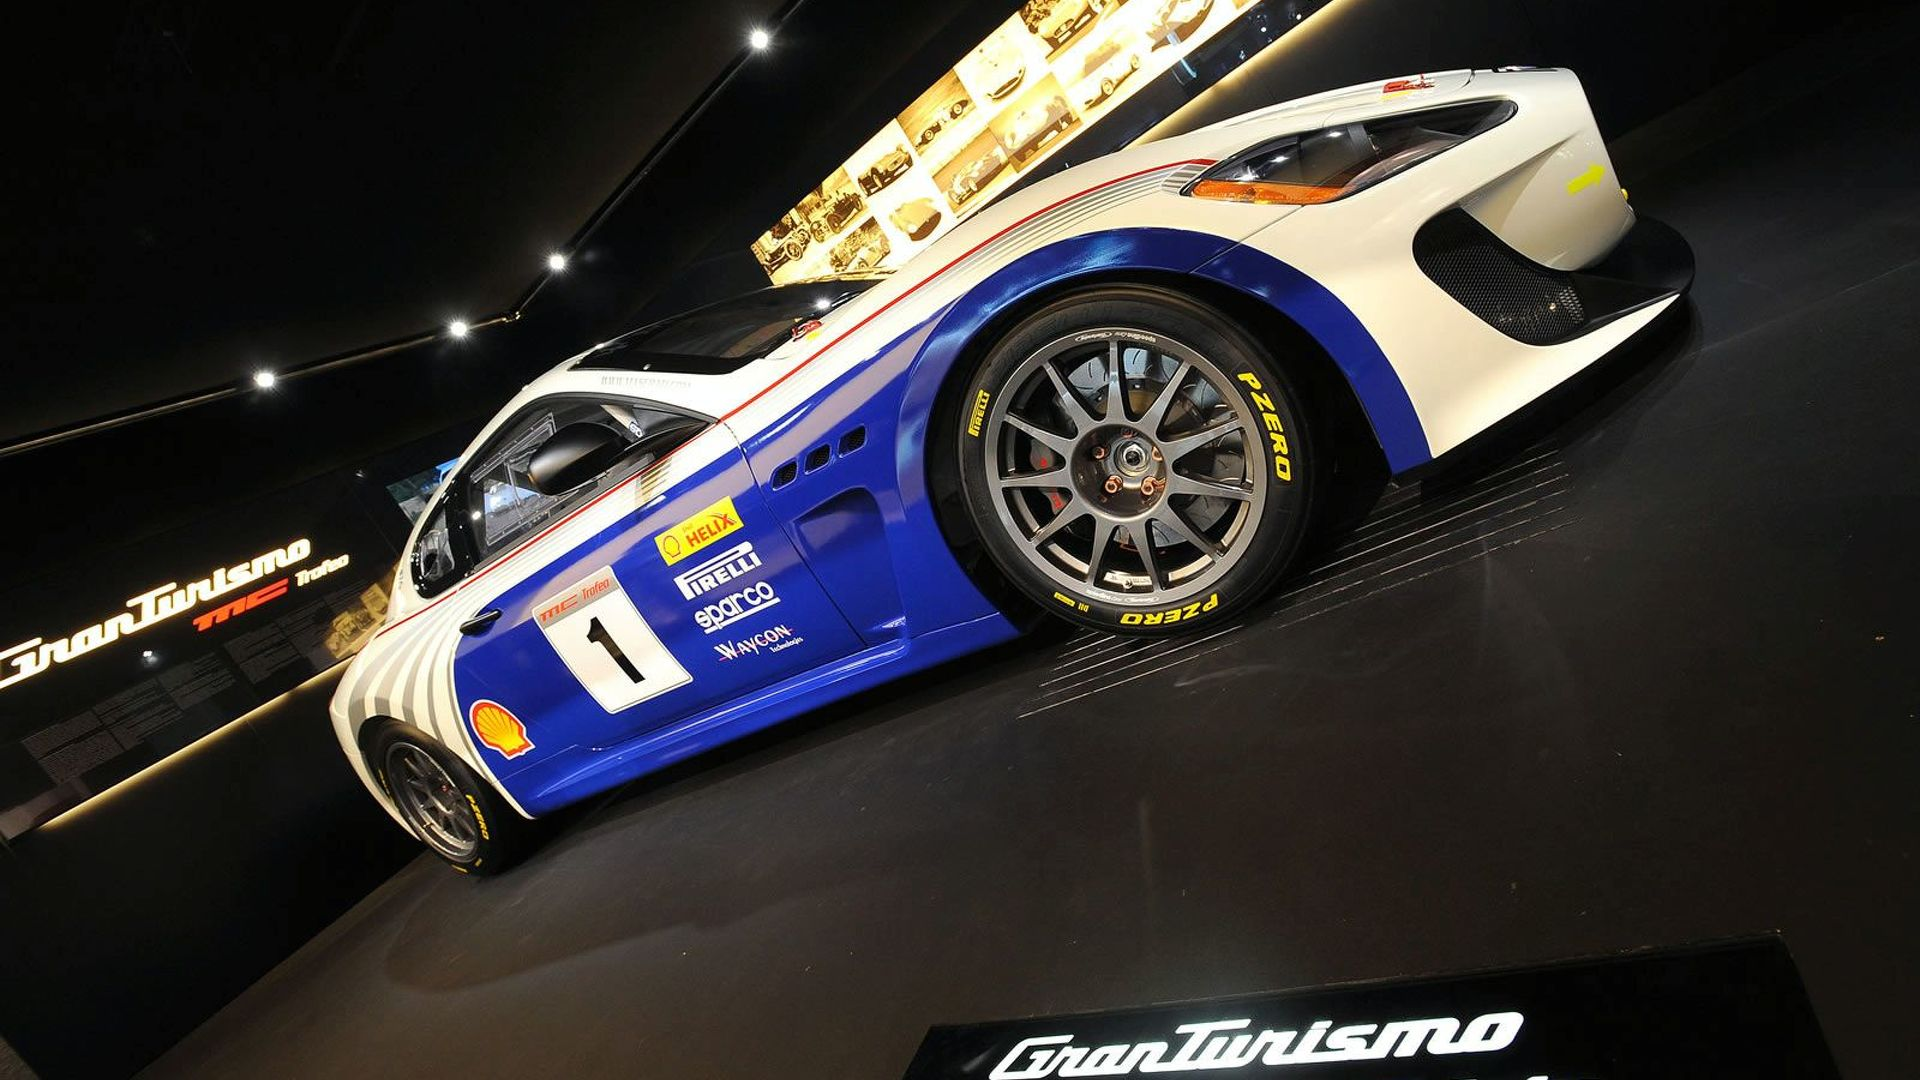 Maserati GranTurismo MC Trofeo Race Car Launched in Frankfurt